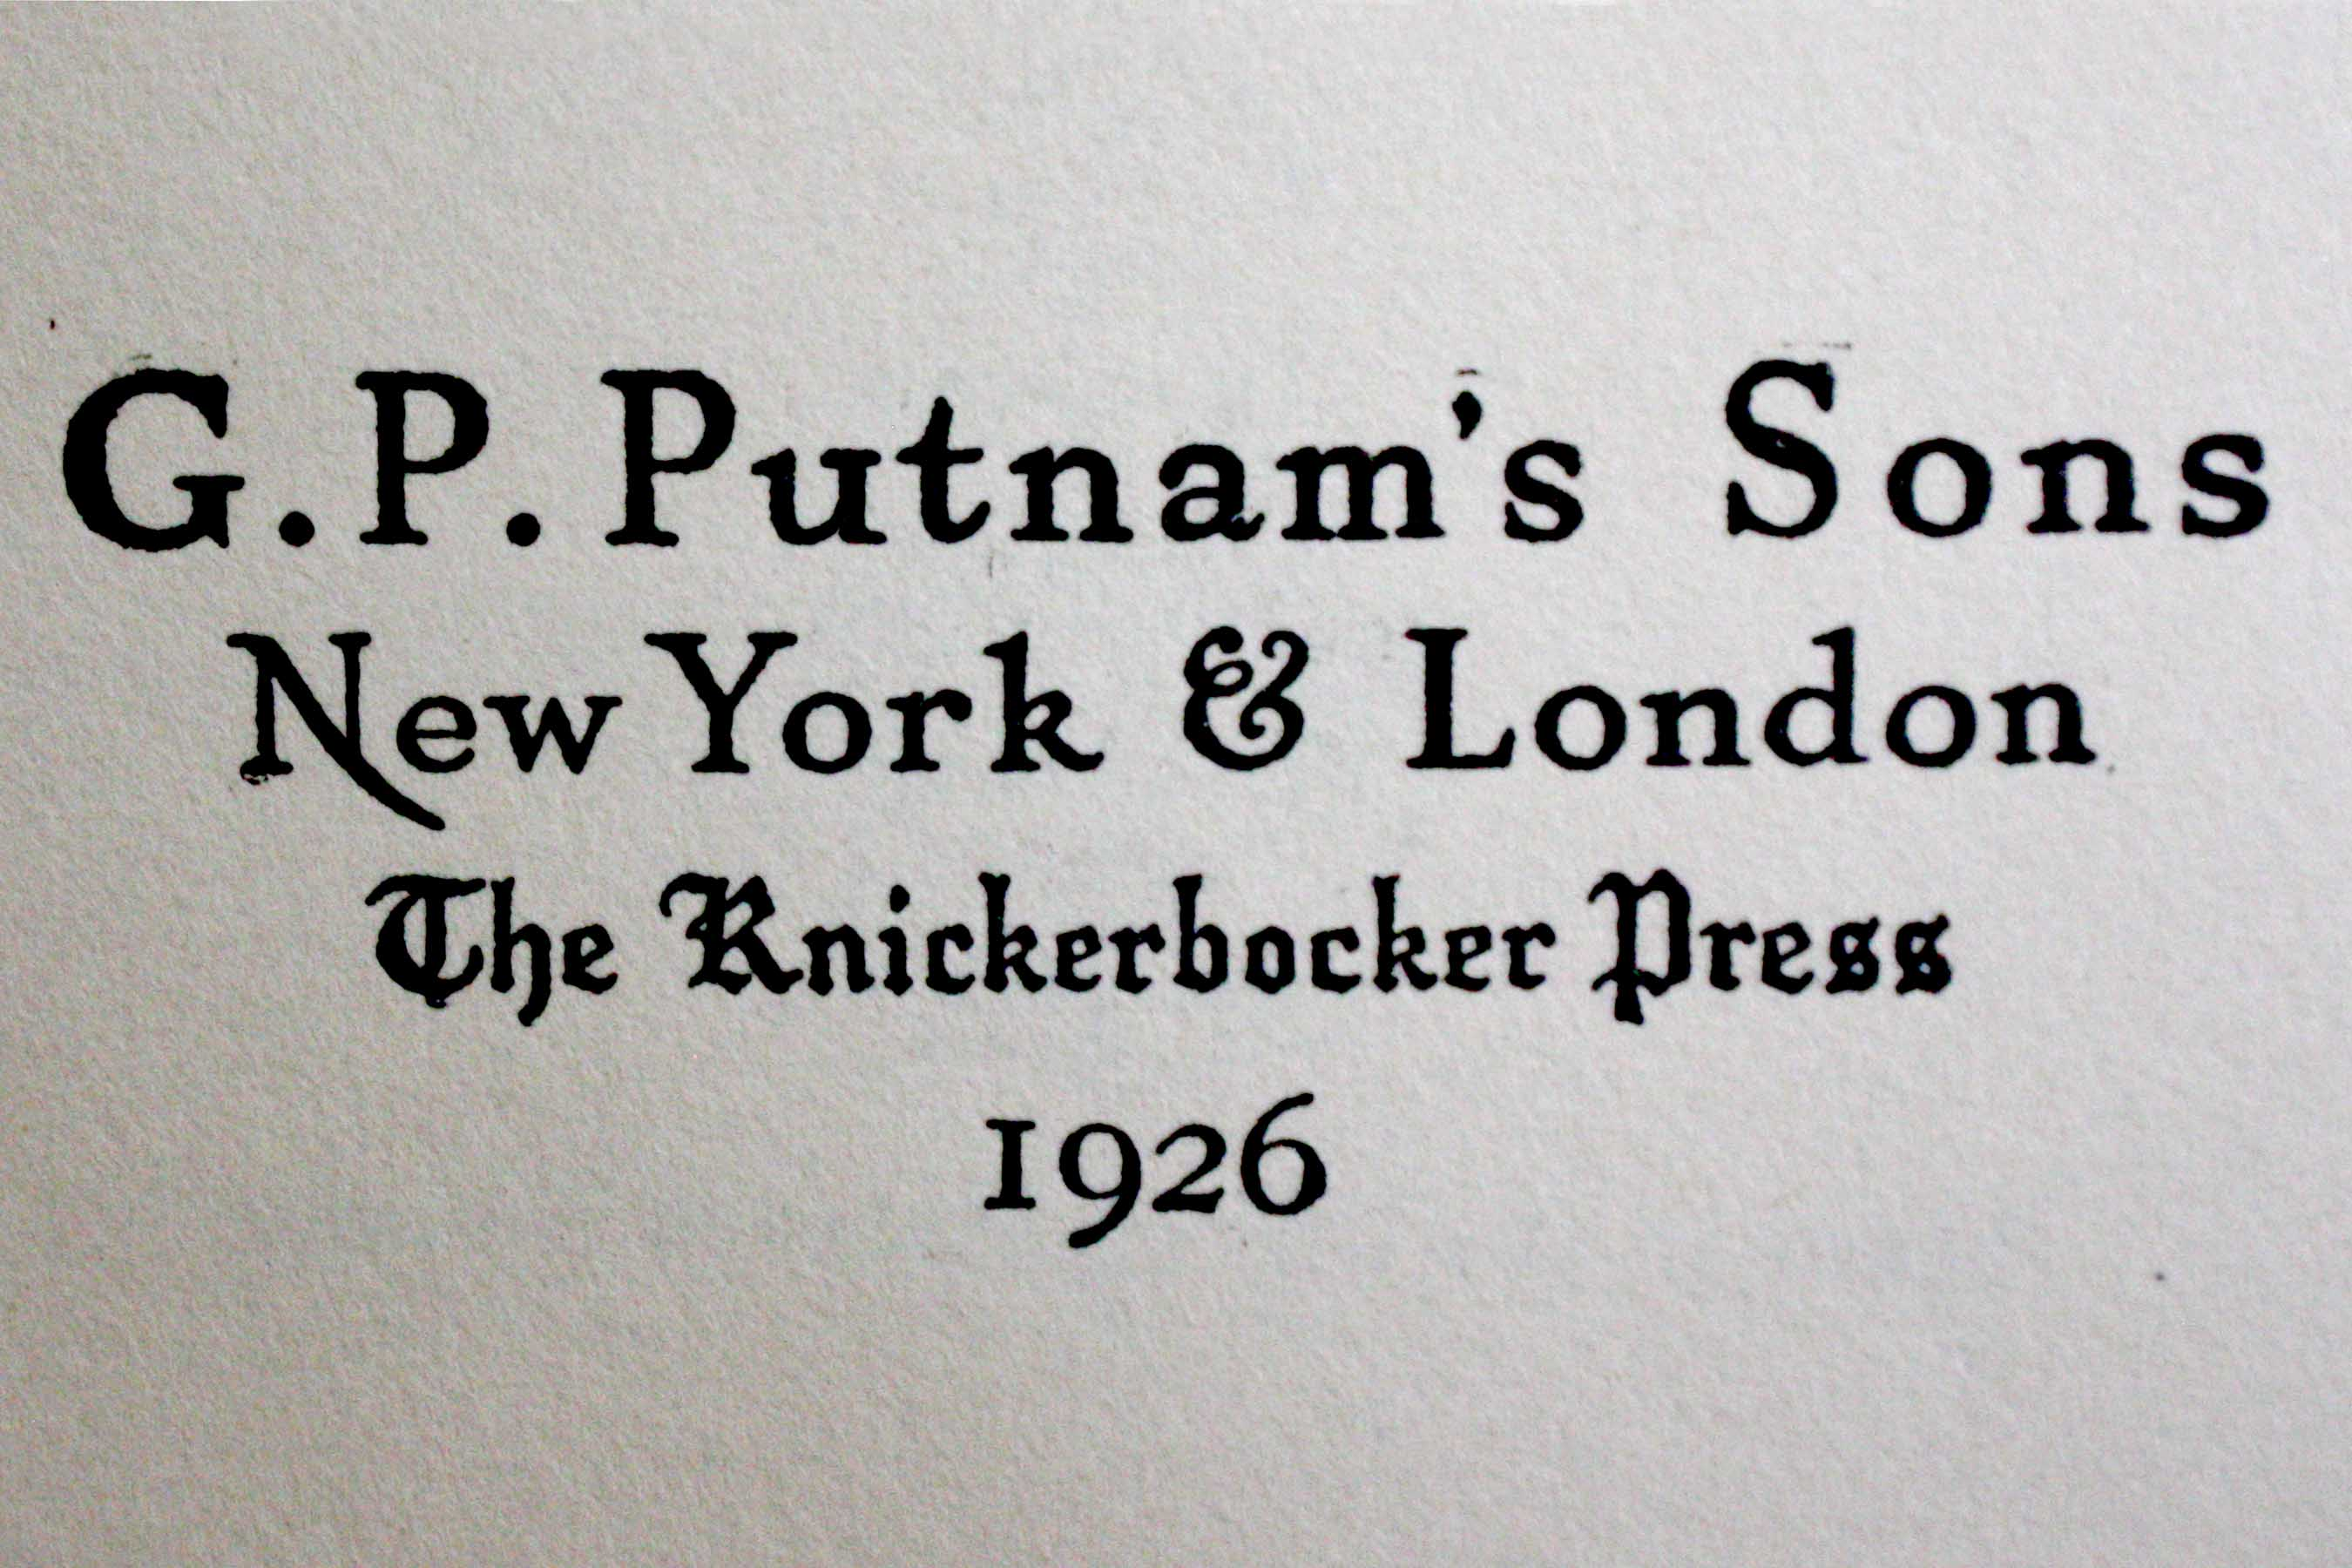 Image of G. P. Putnam & Sons from Wikidata